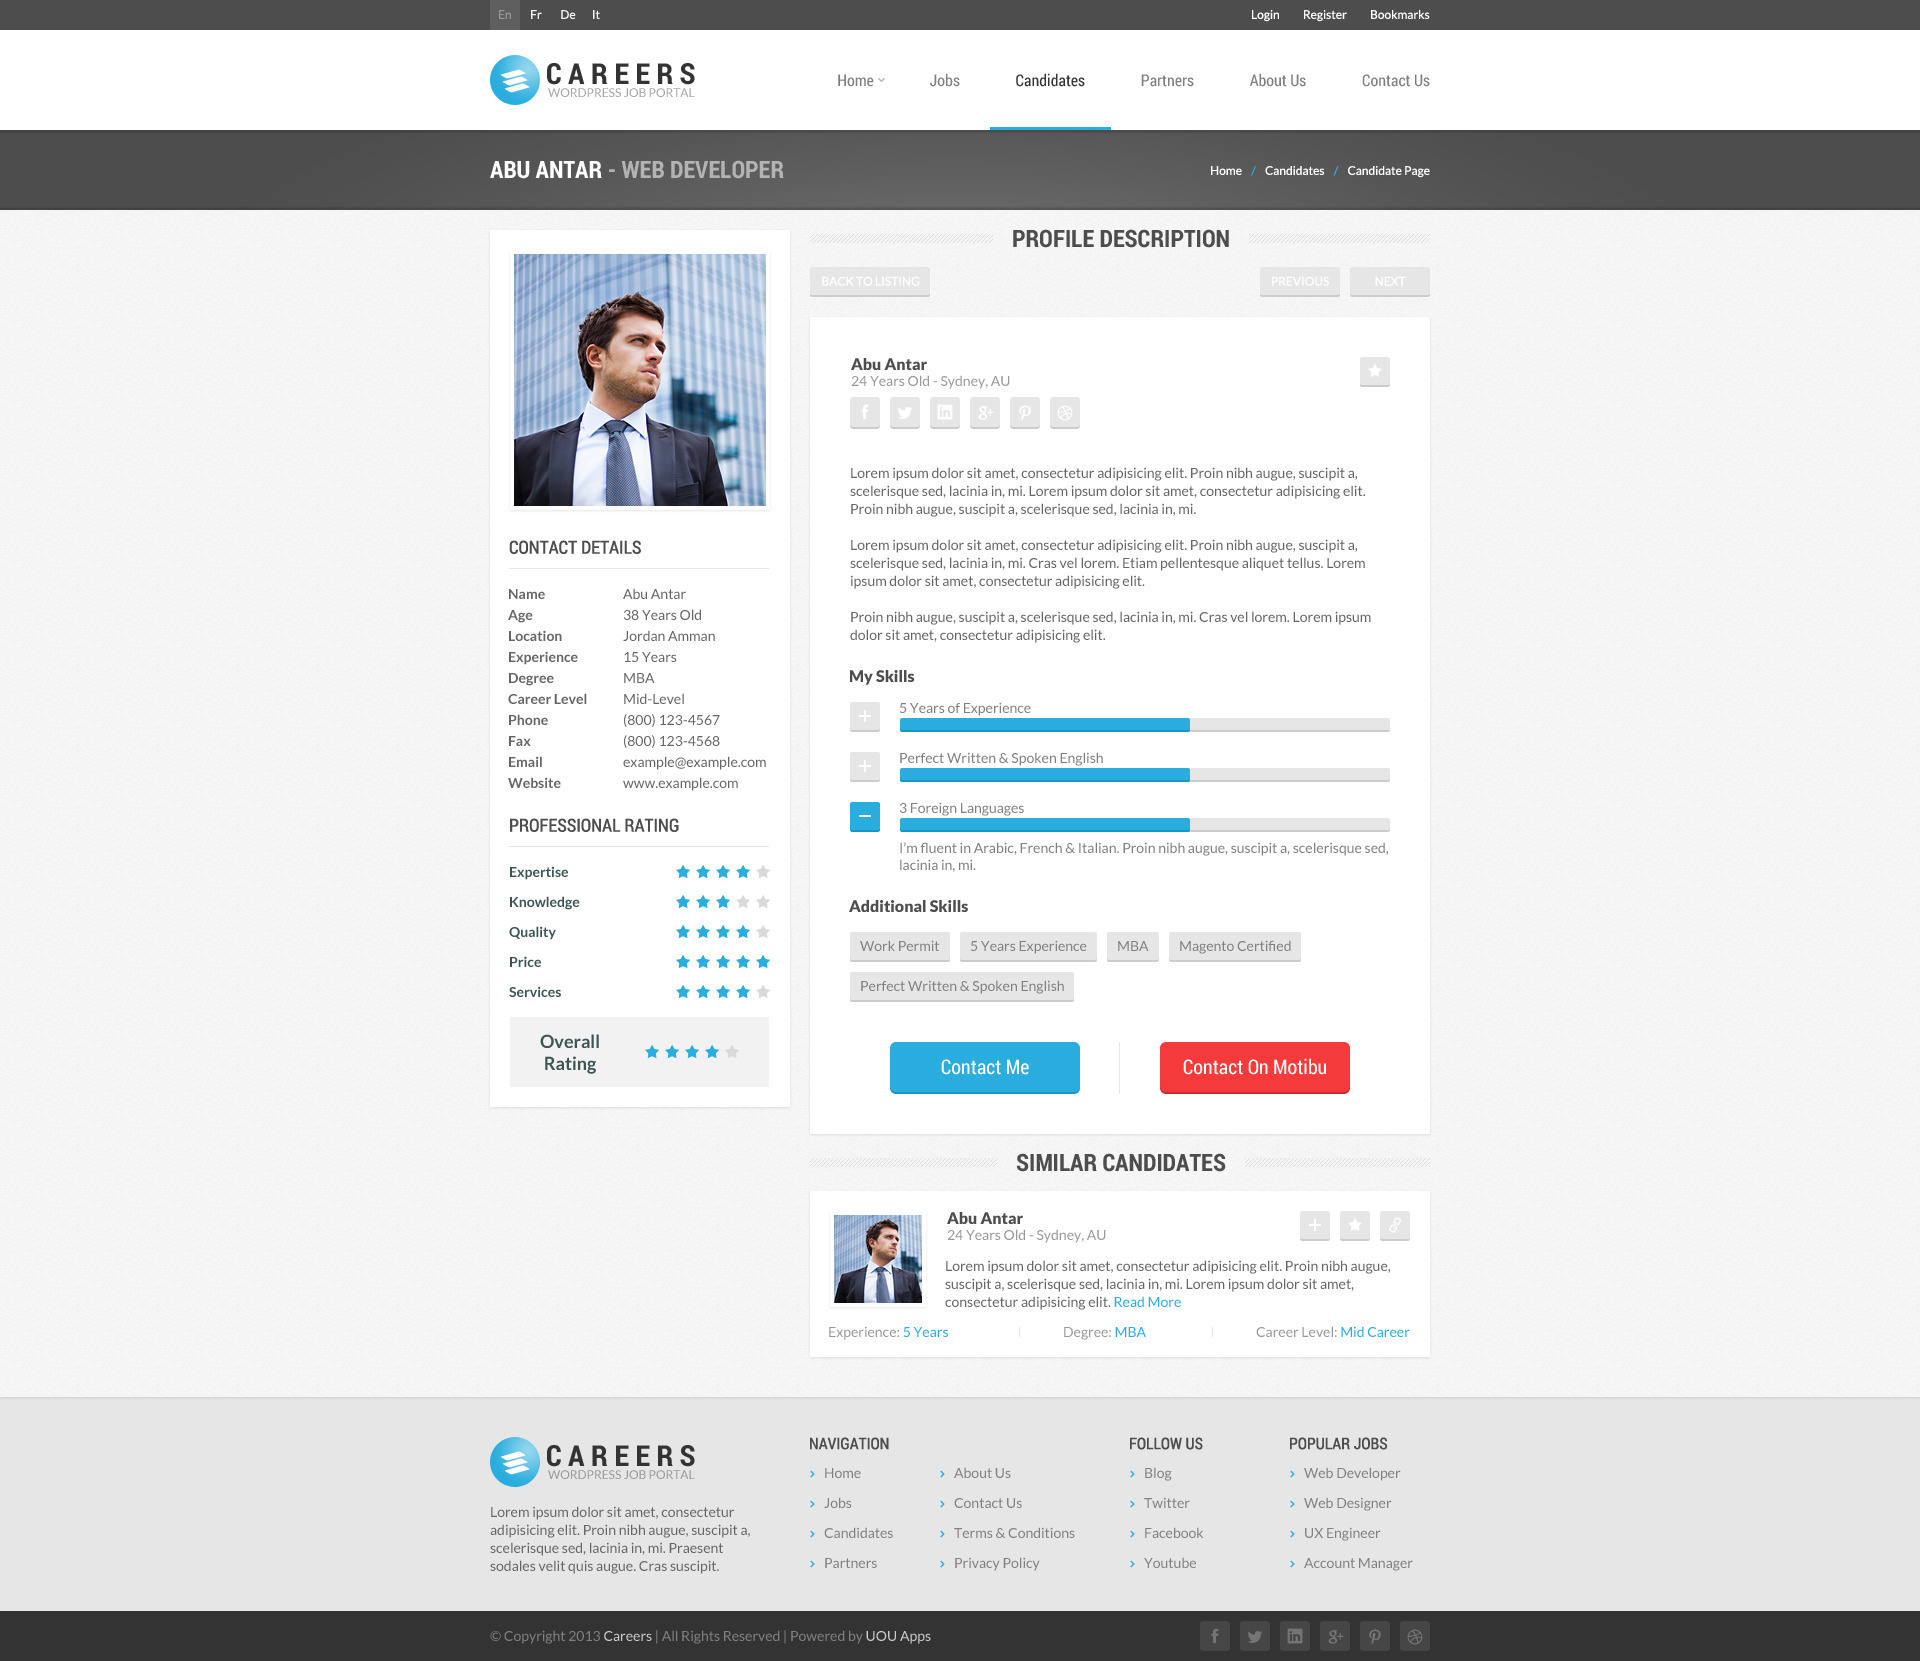 careers job portal candidates wp theme by uouapps themeforest careers job portal candidates wp theme